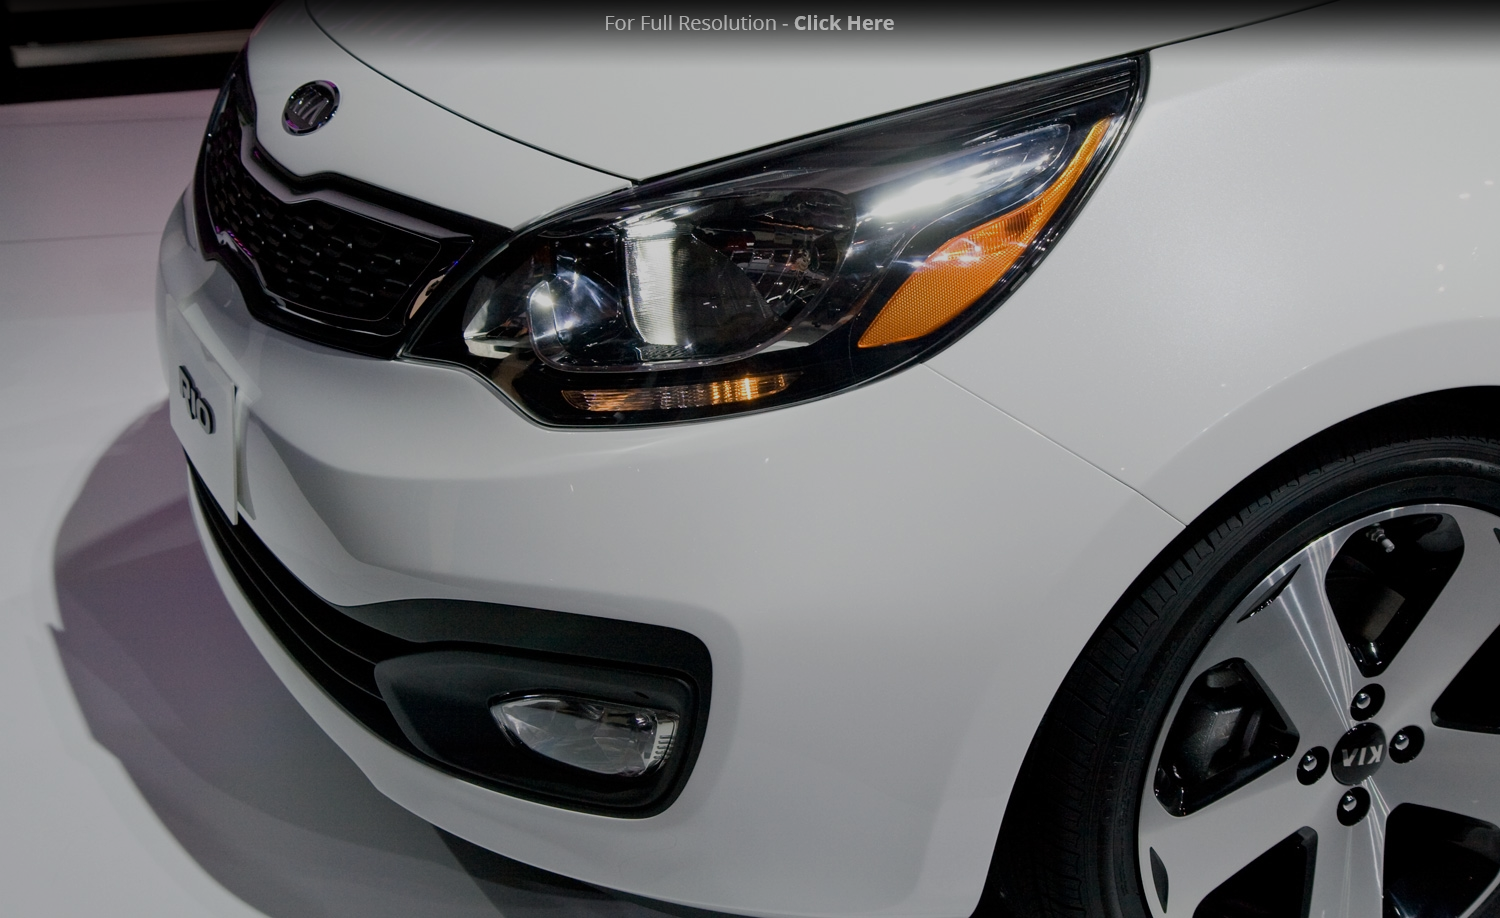 2019 Kia Rio5 photo - 4